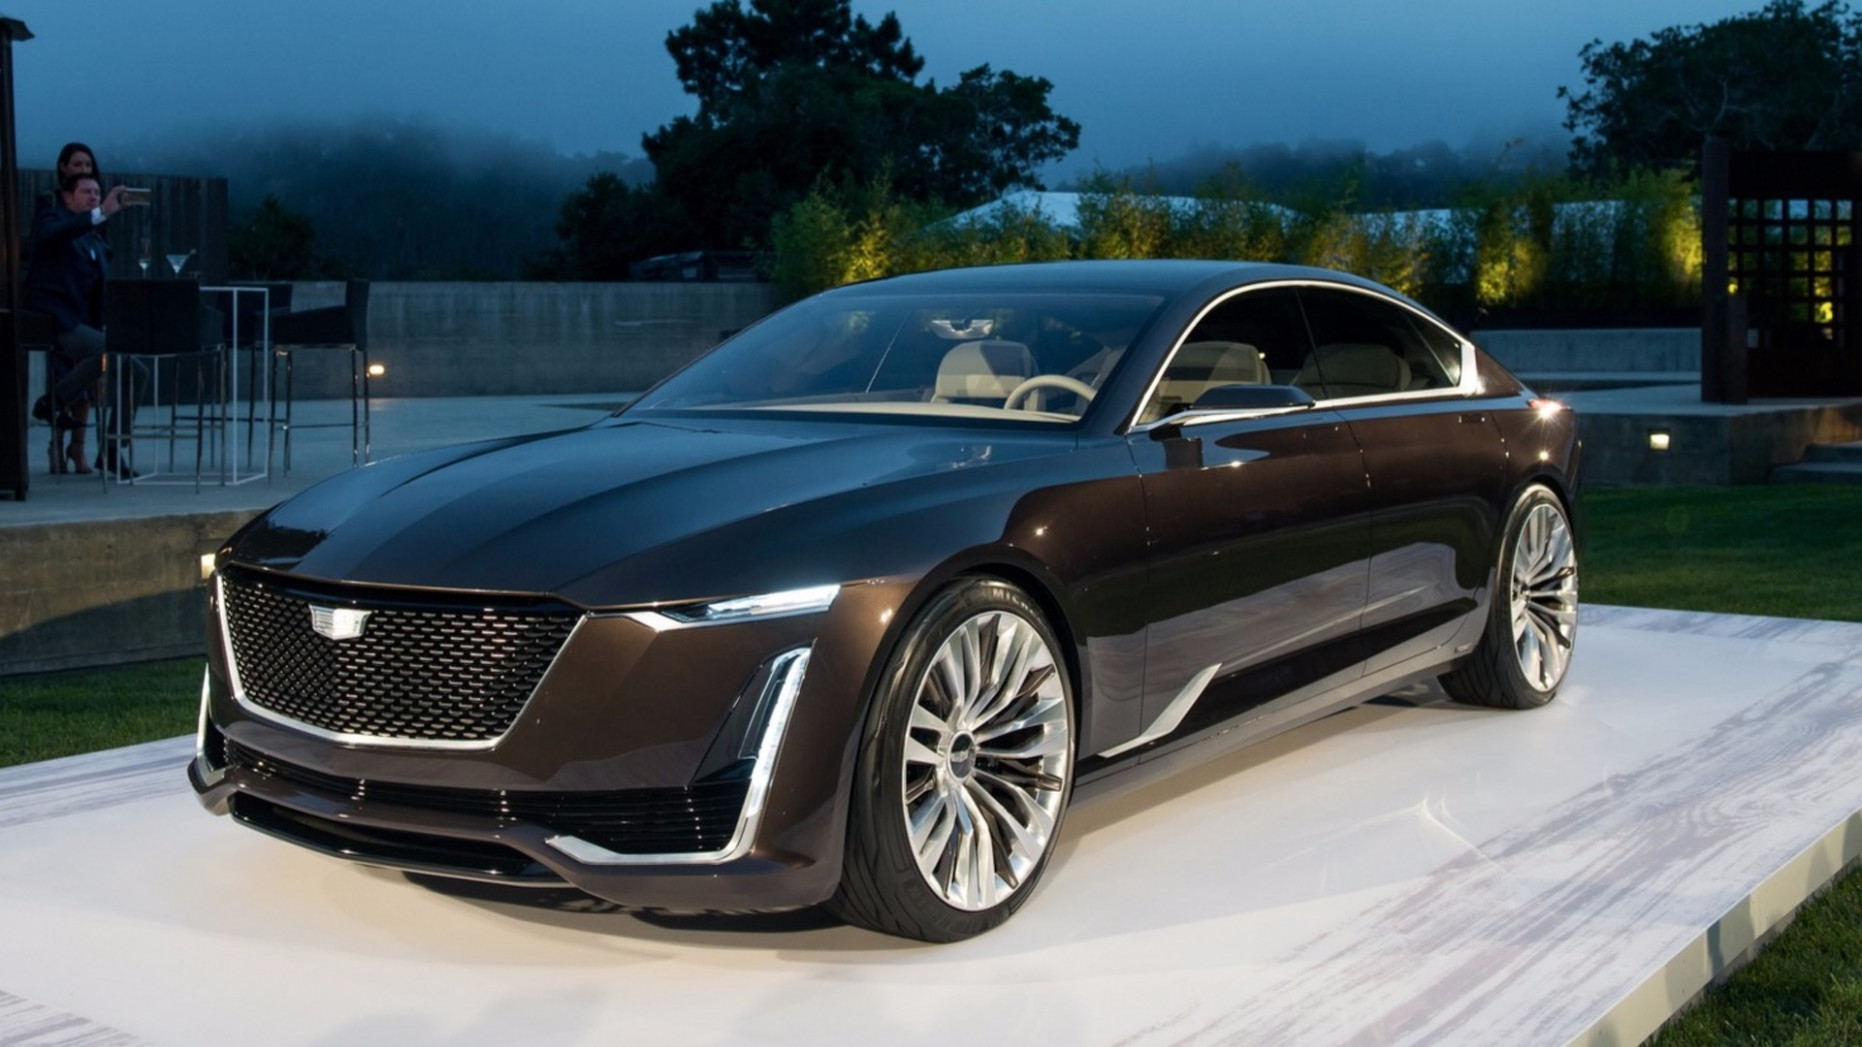 Performance 2022 Cadillac Xt6 Release Date